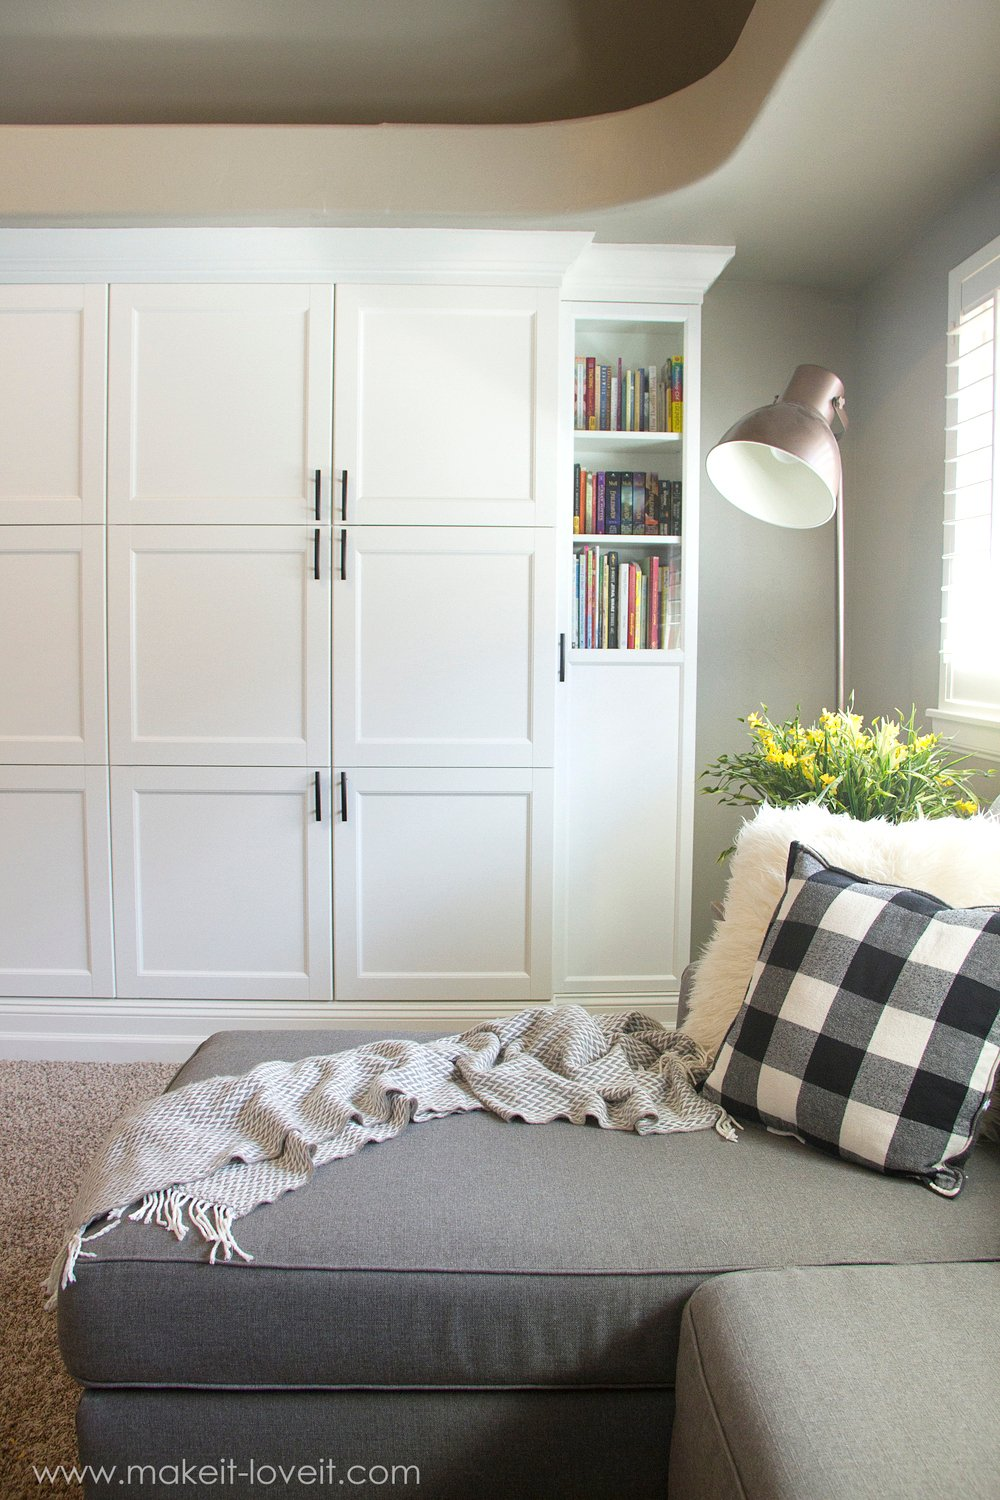 How to Turn IKEA Bookshelves into CUSTOM BUILT-INS